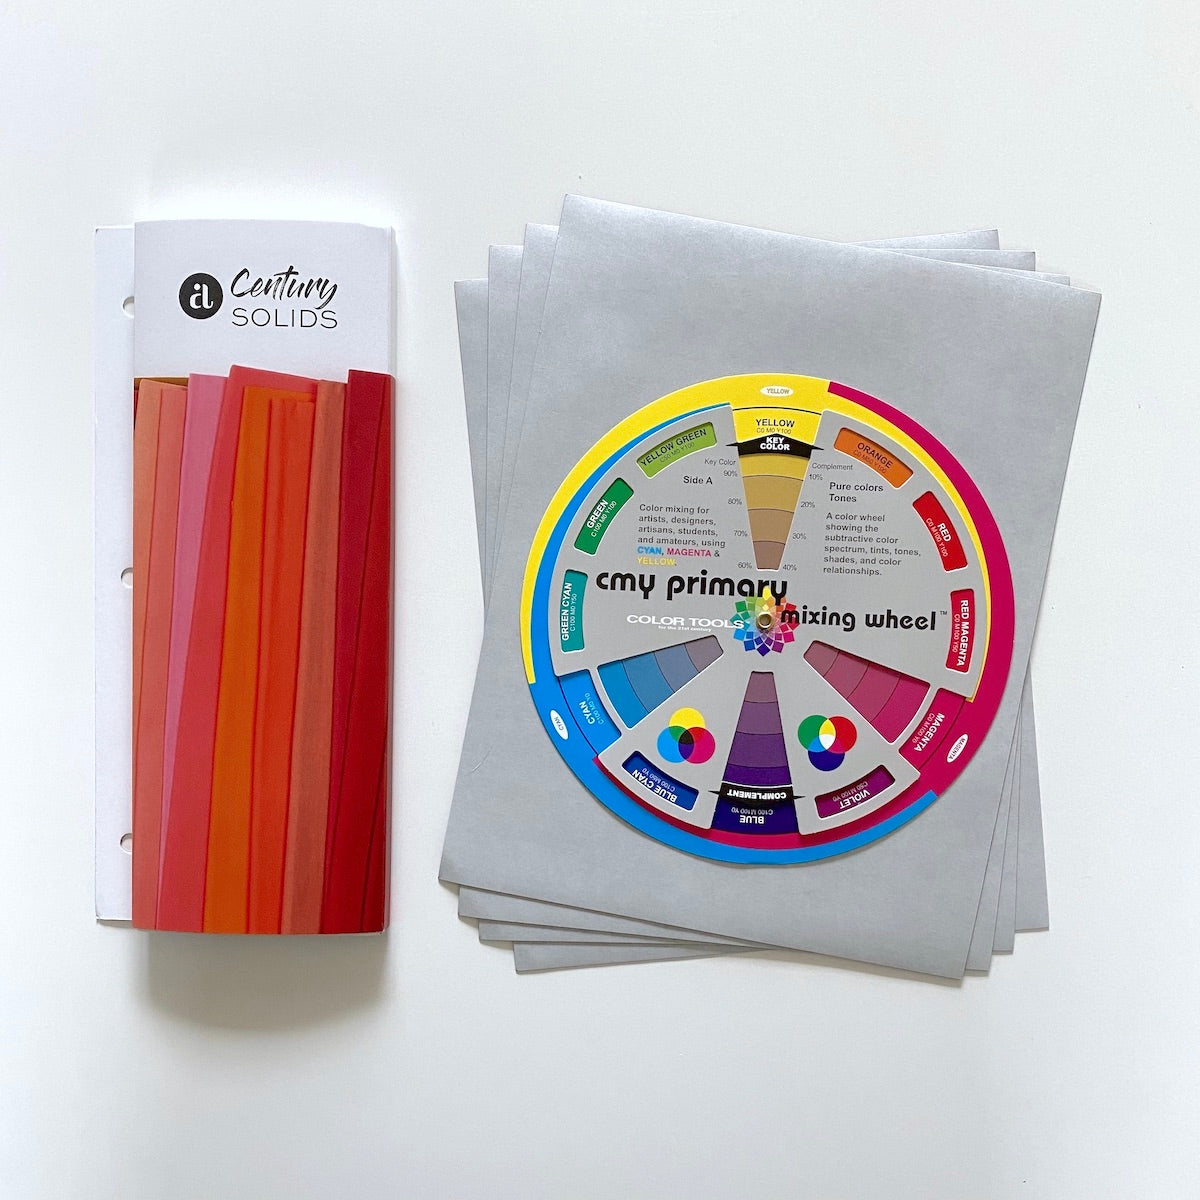 Fabric Swatch Magnet Kit - Century Solids | Sewfinity.com